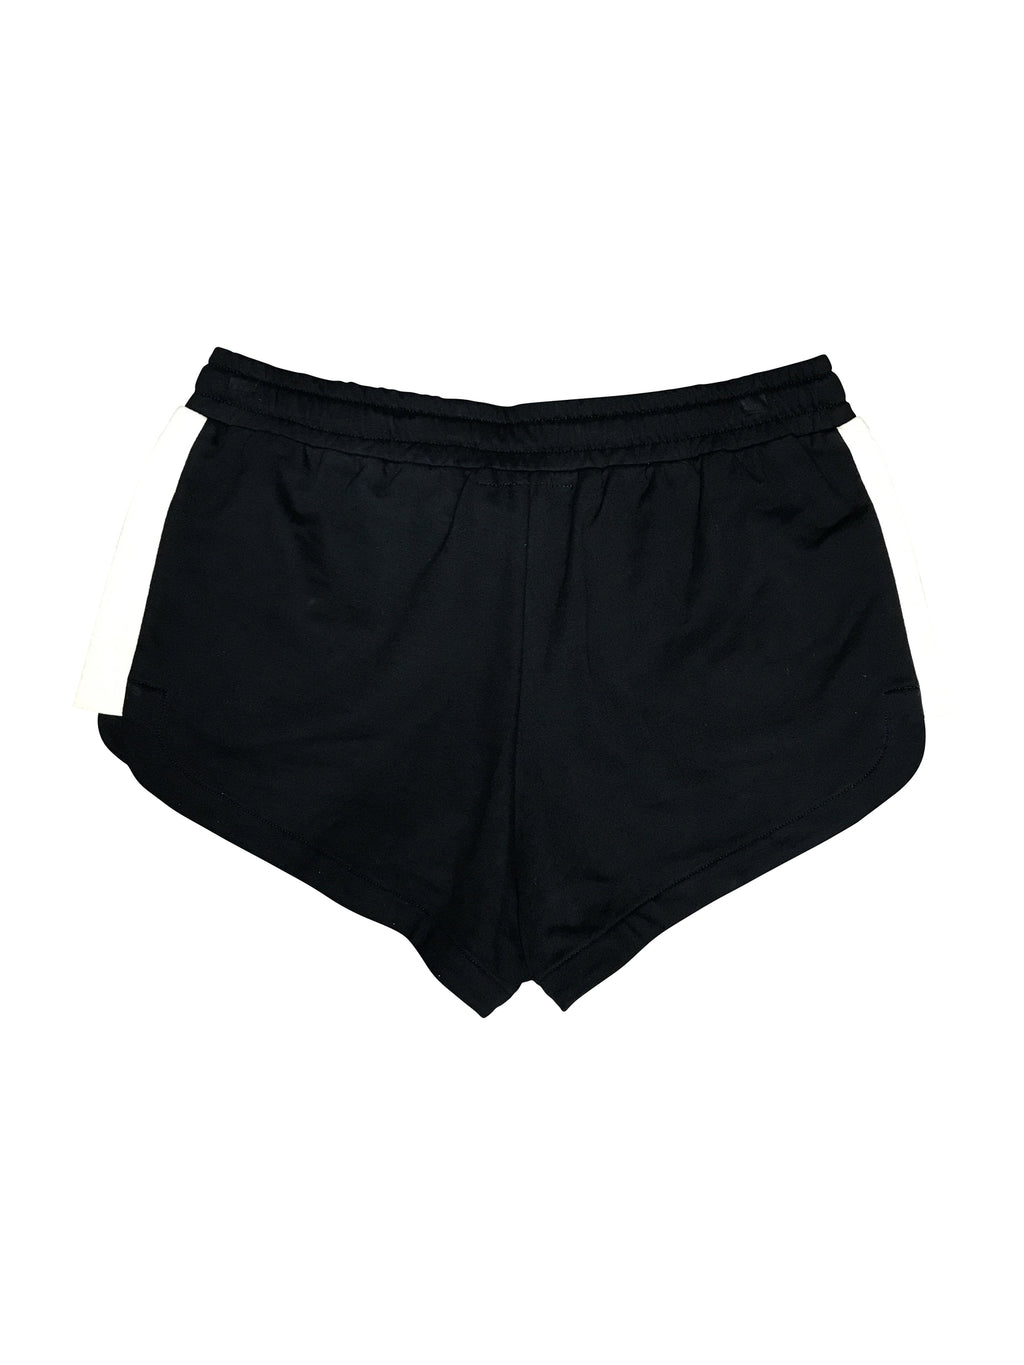 ACACIA Kona Cotton Shorts | Ebony